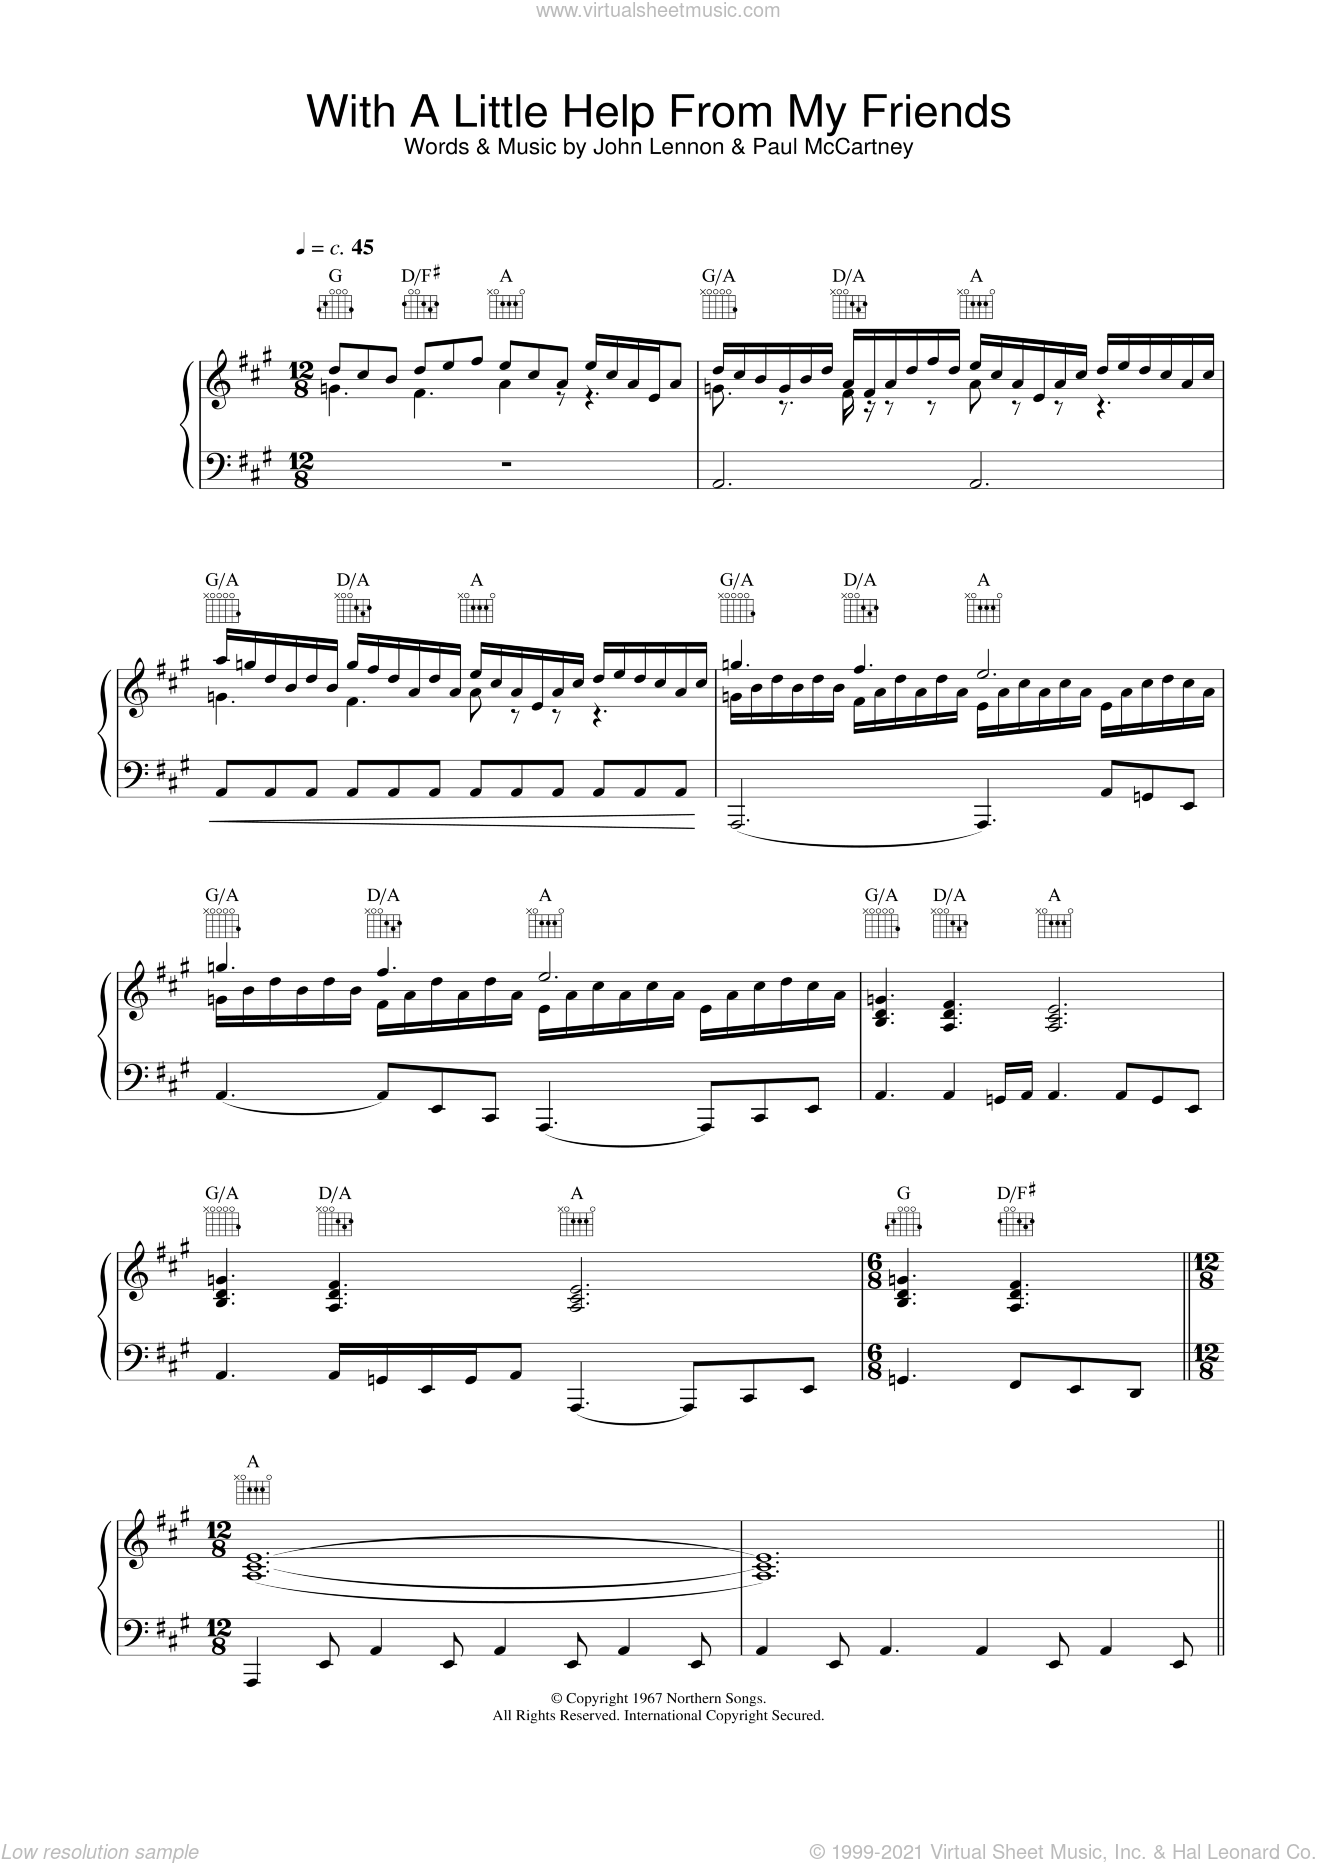 With A Little Help From My Friends sheet music for voice, piano or guitar by Joe Cocker. Score Image Preview.